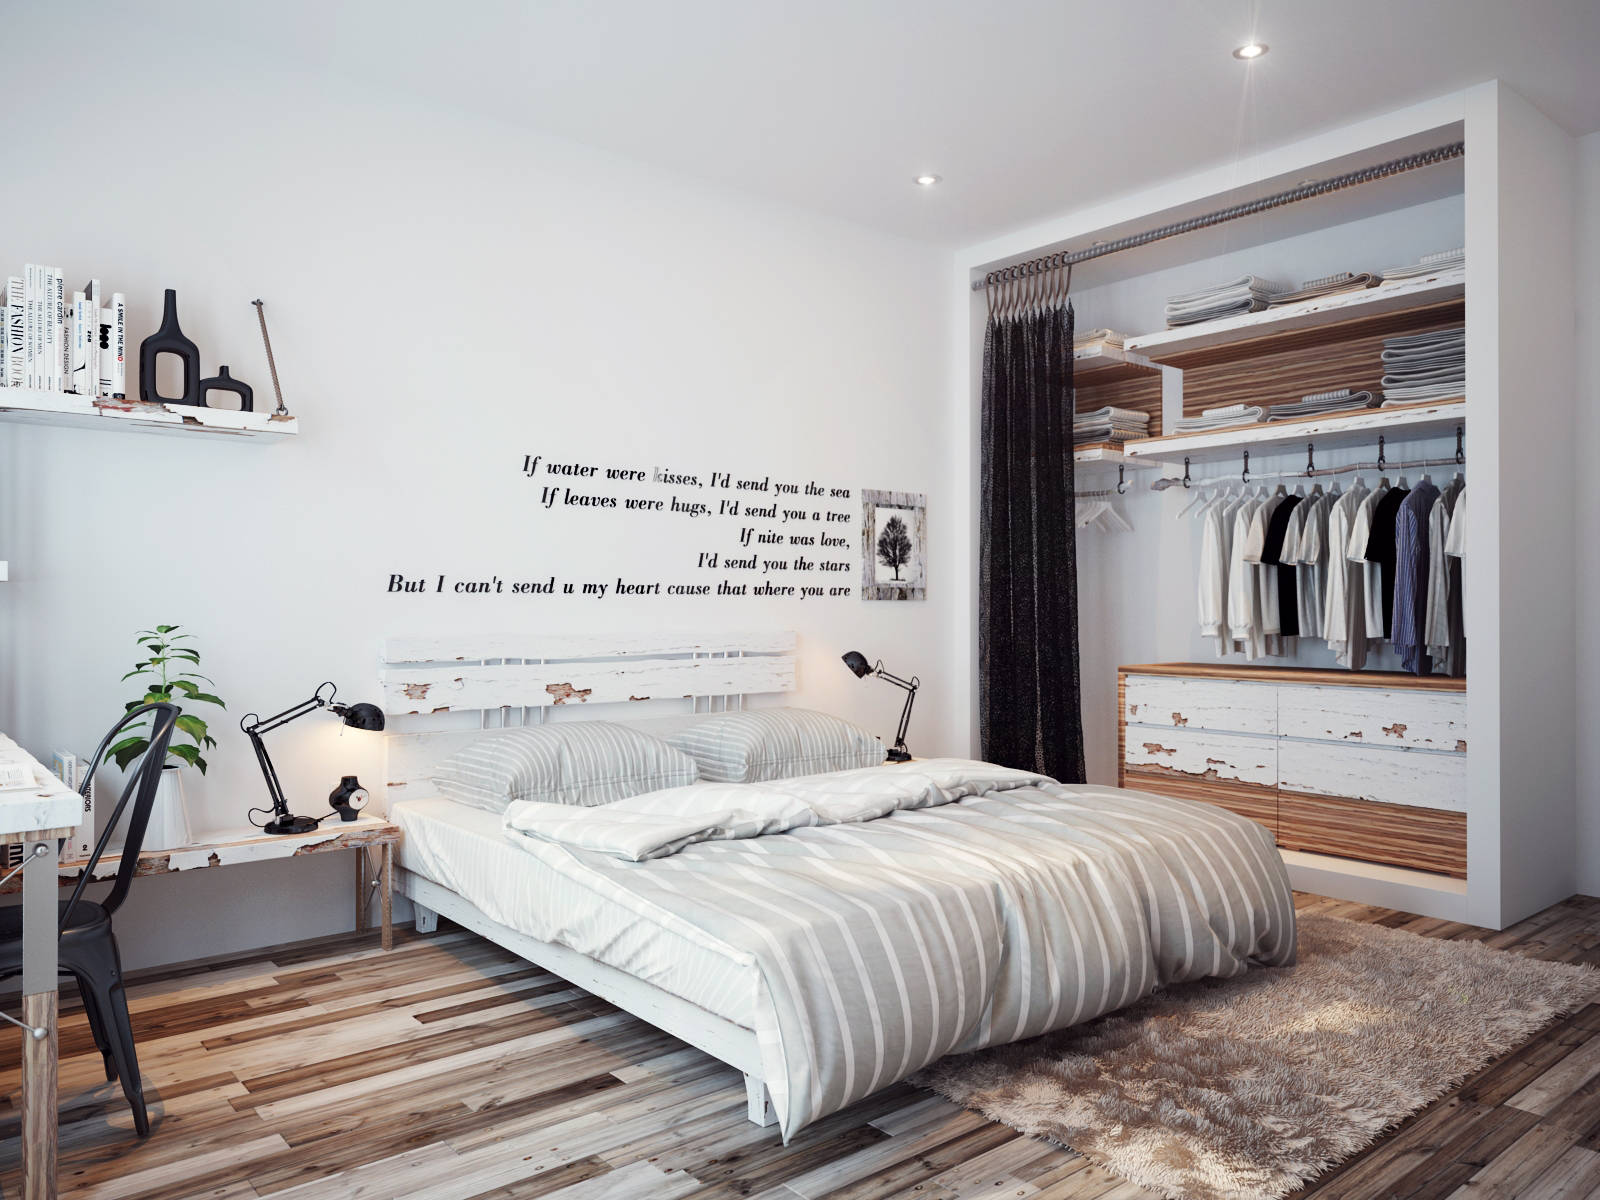 bedroom wall quoteInterior Design Ideas.